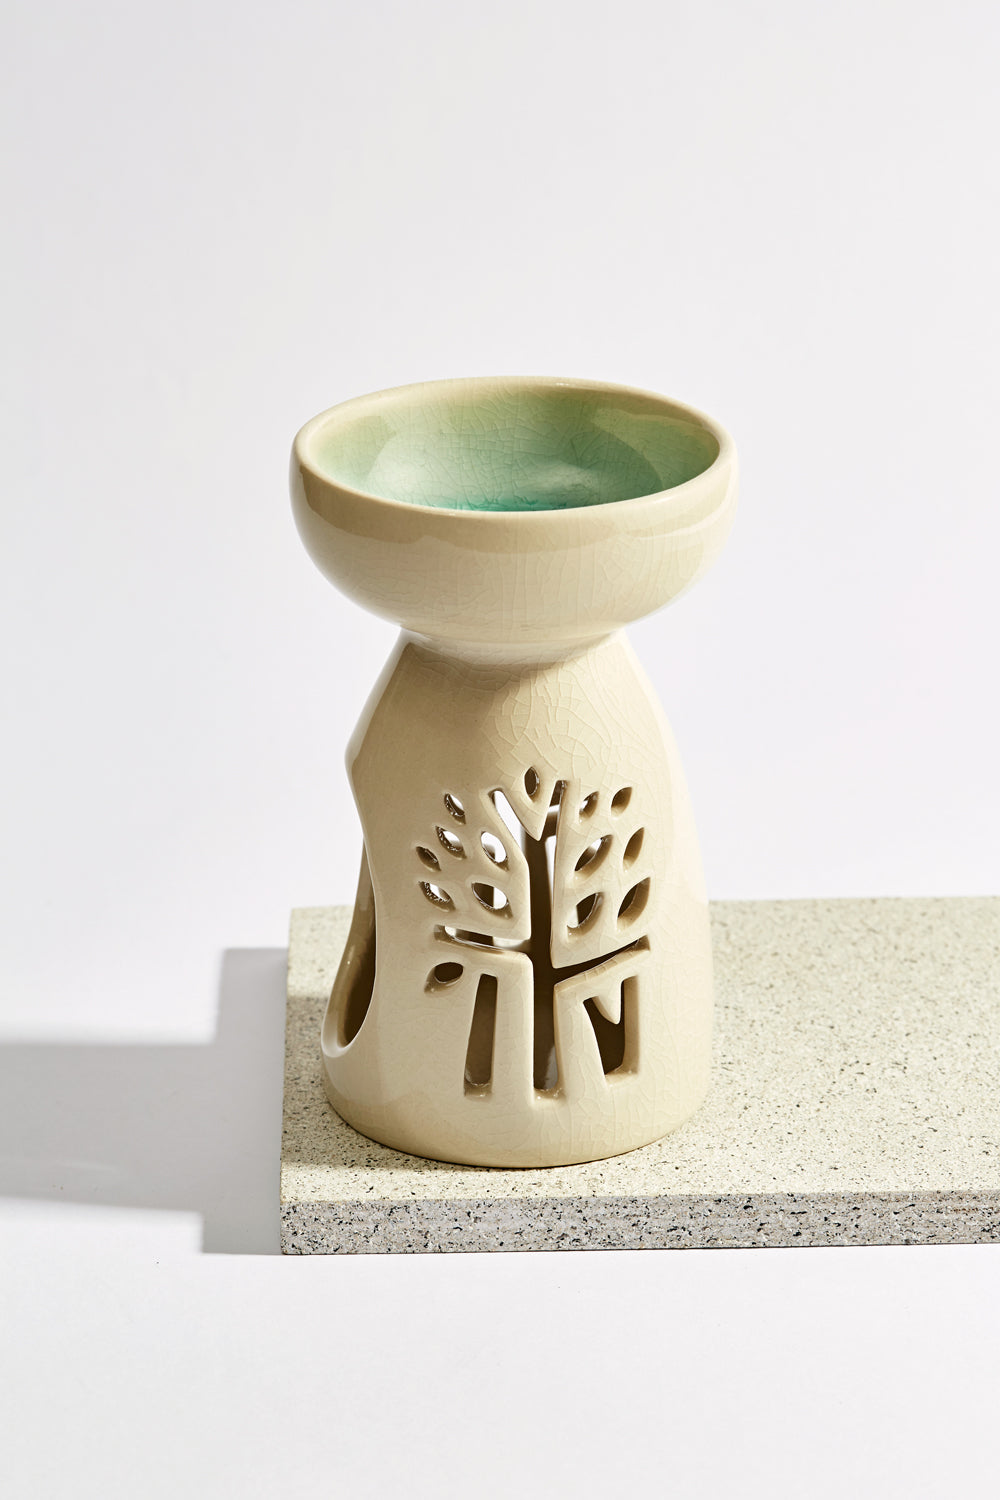 White Ceramic Oil Burner - Medium - Banyan Tree Gallery